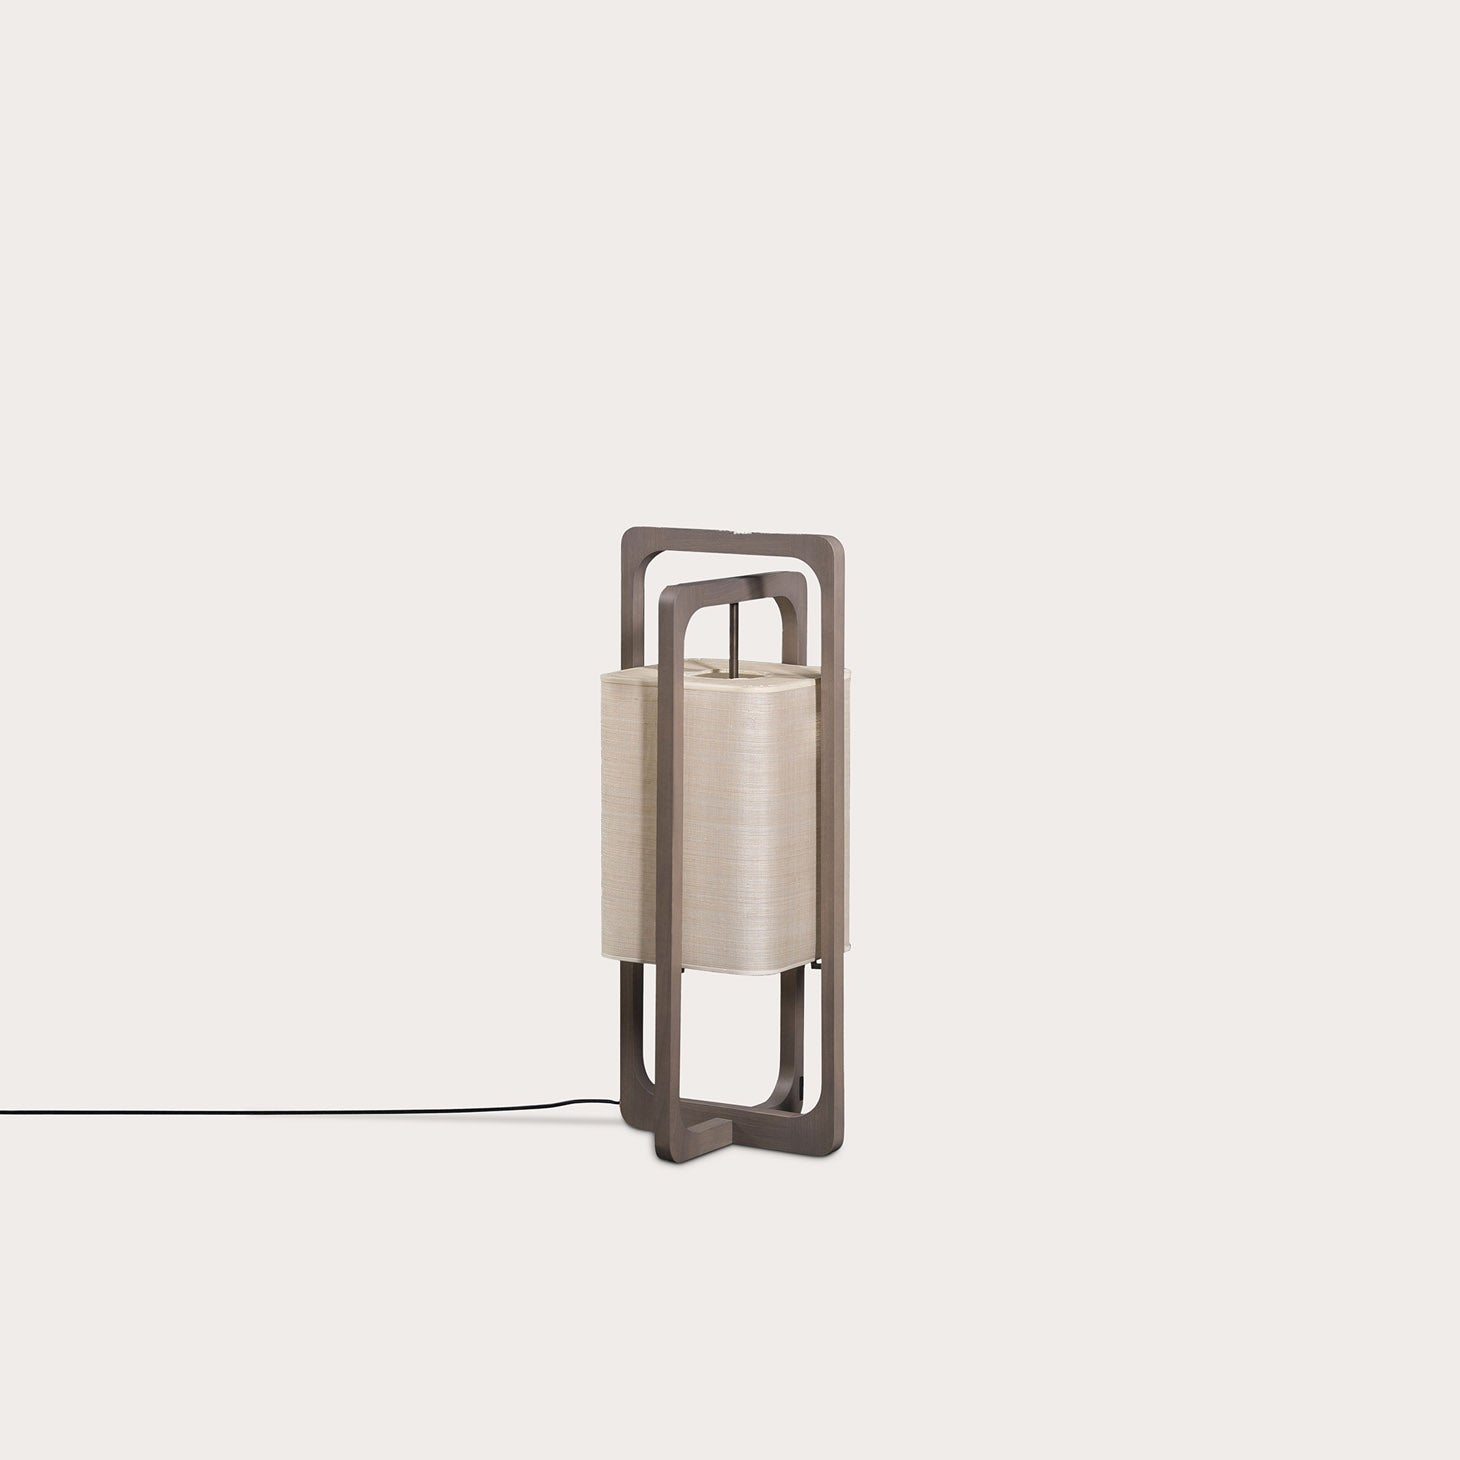 LIHOU Lighting Bruno Moinard Designer Furniture Sku: 773-160-10006